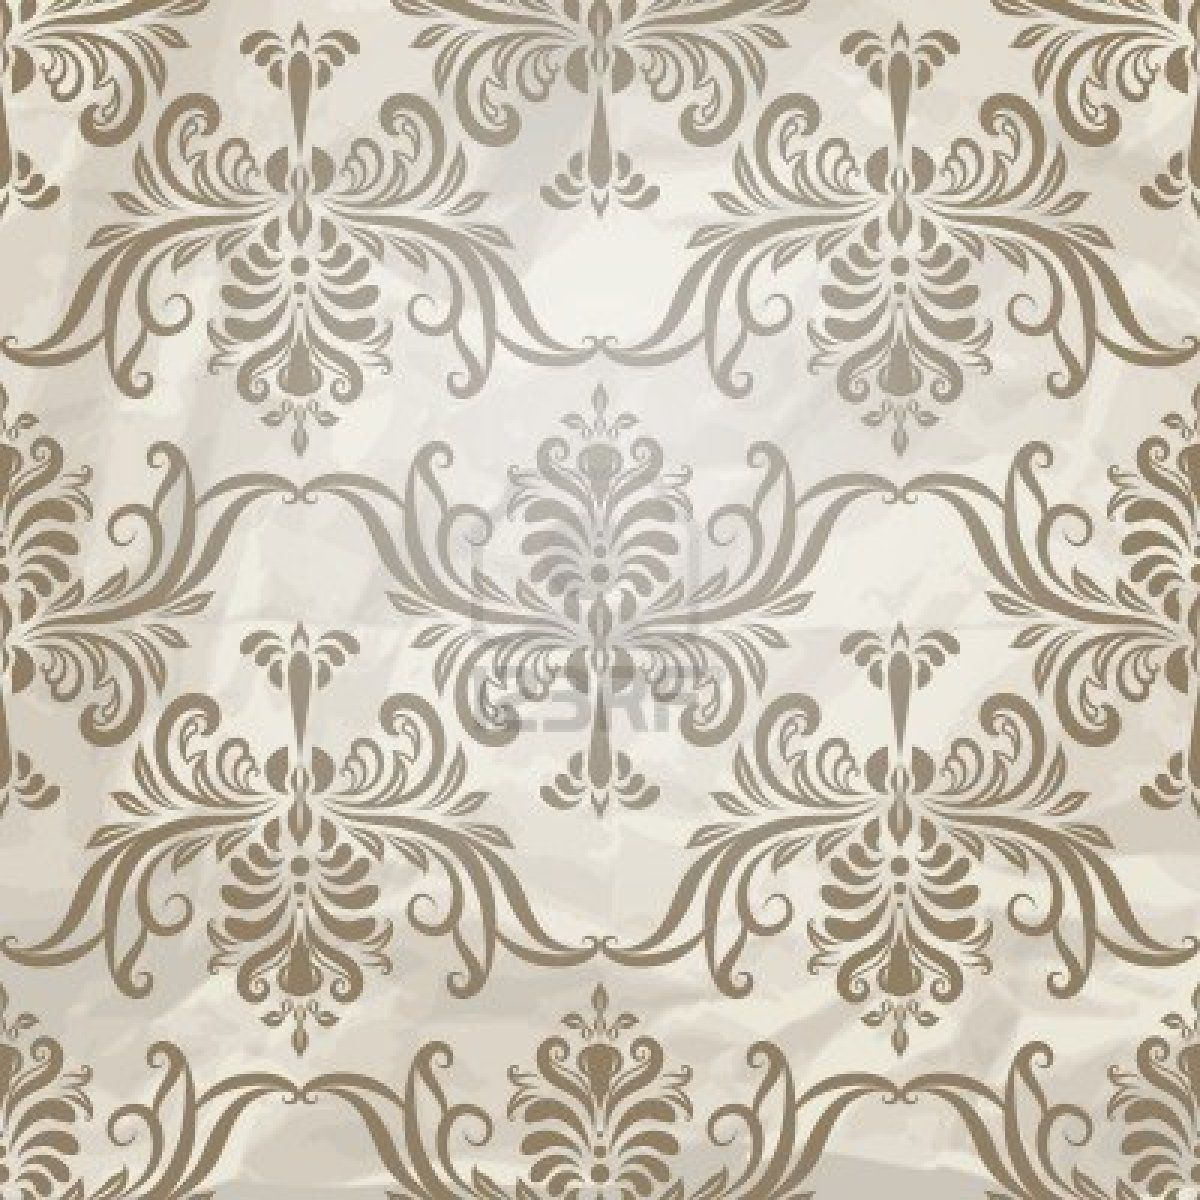 Wall Paper Patterns vector seamless vintage wallpaper pattern on crumpled paper